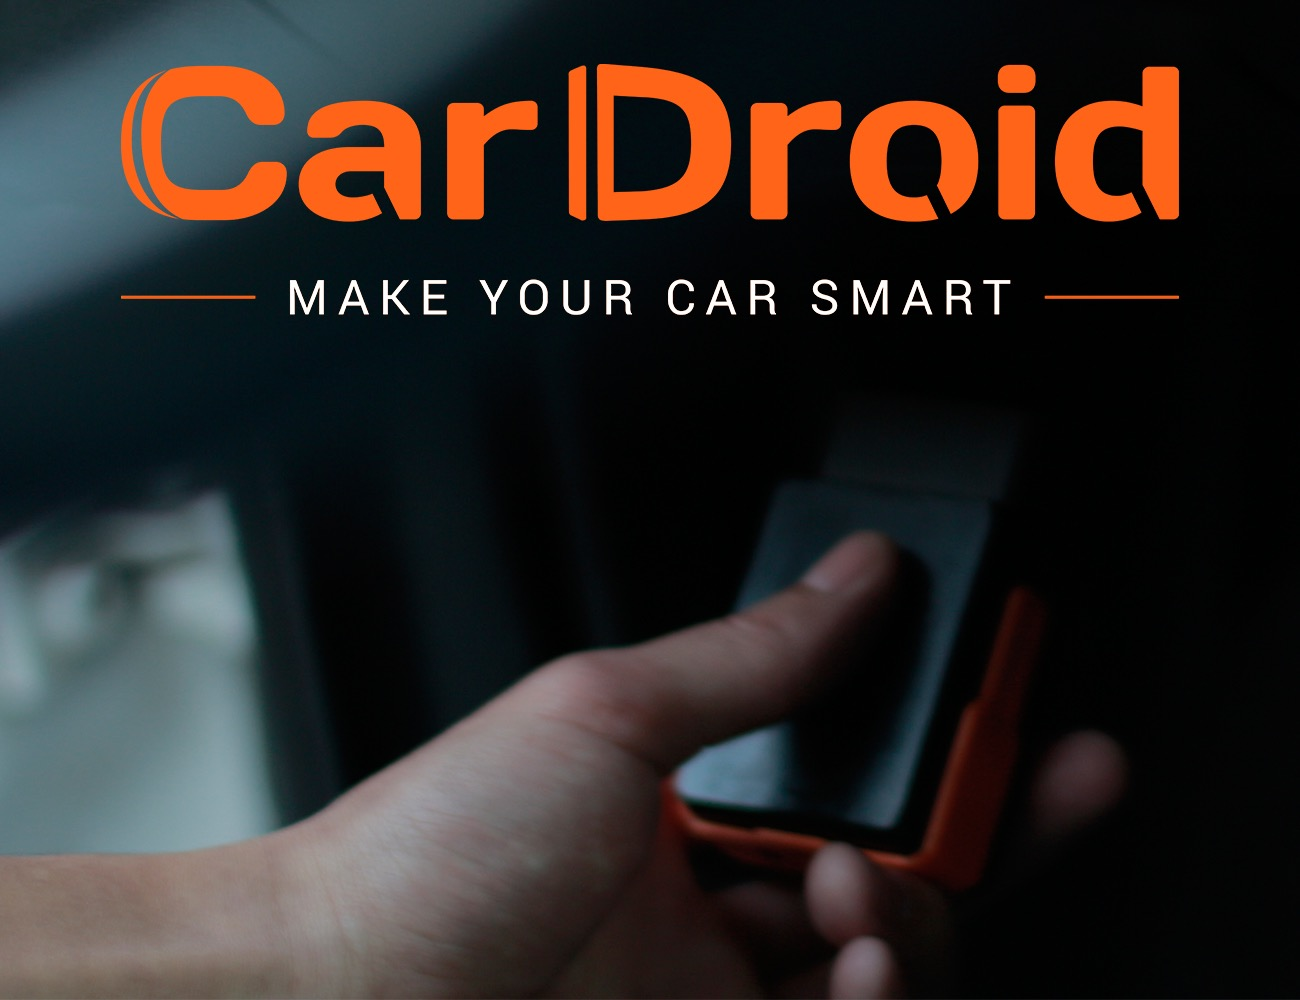 cardroid-first-android-vehicle-monitoring-device-01